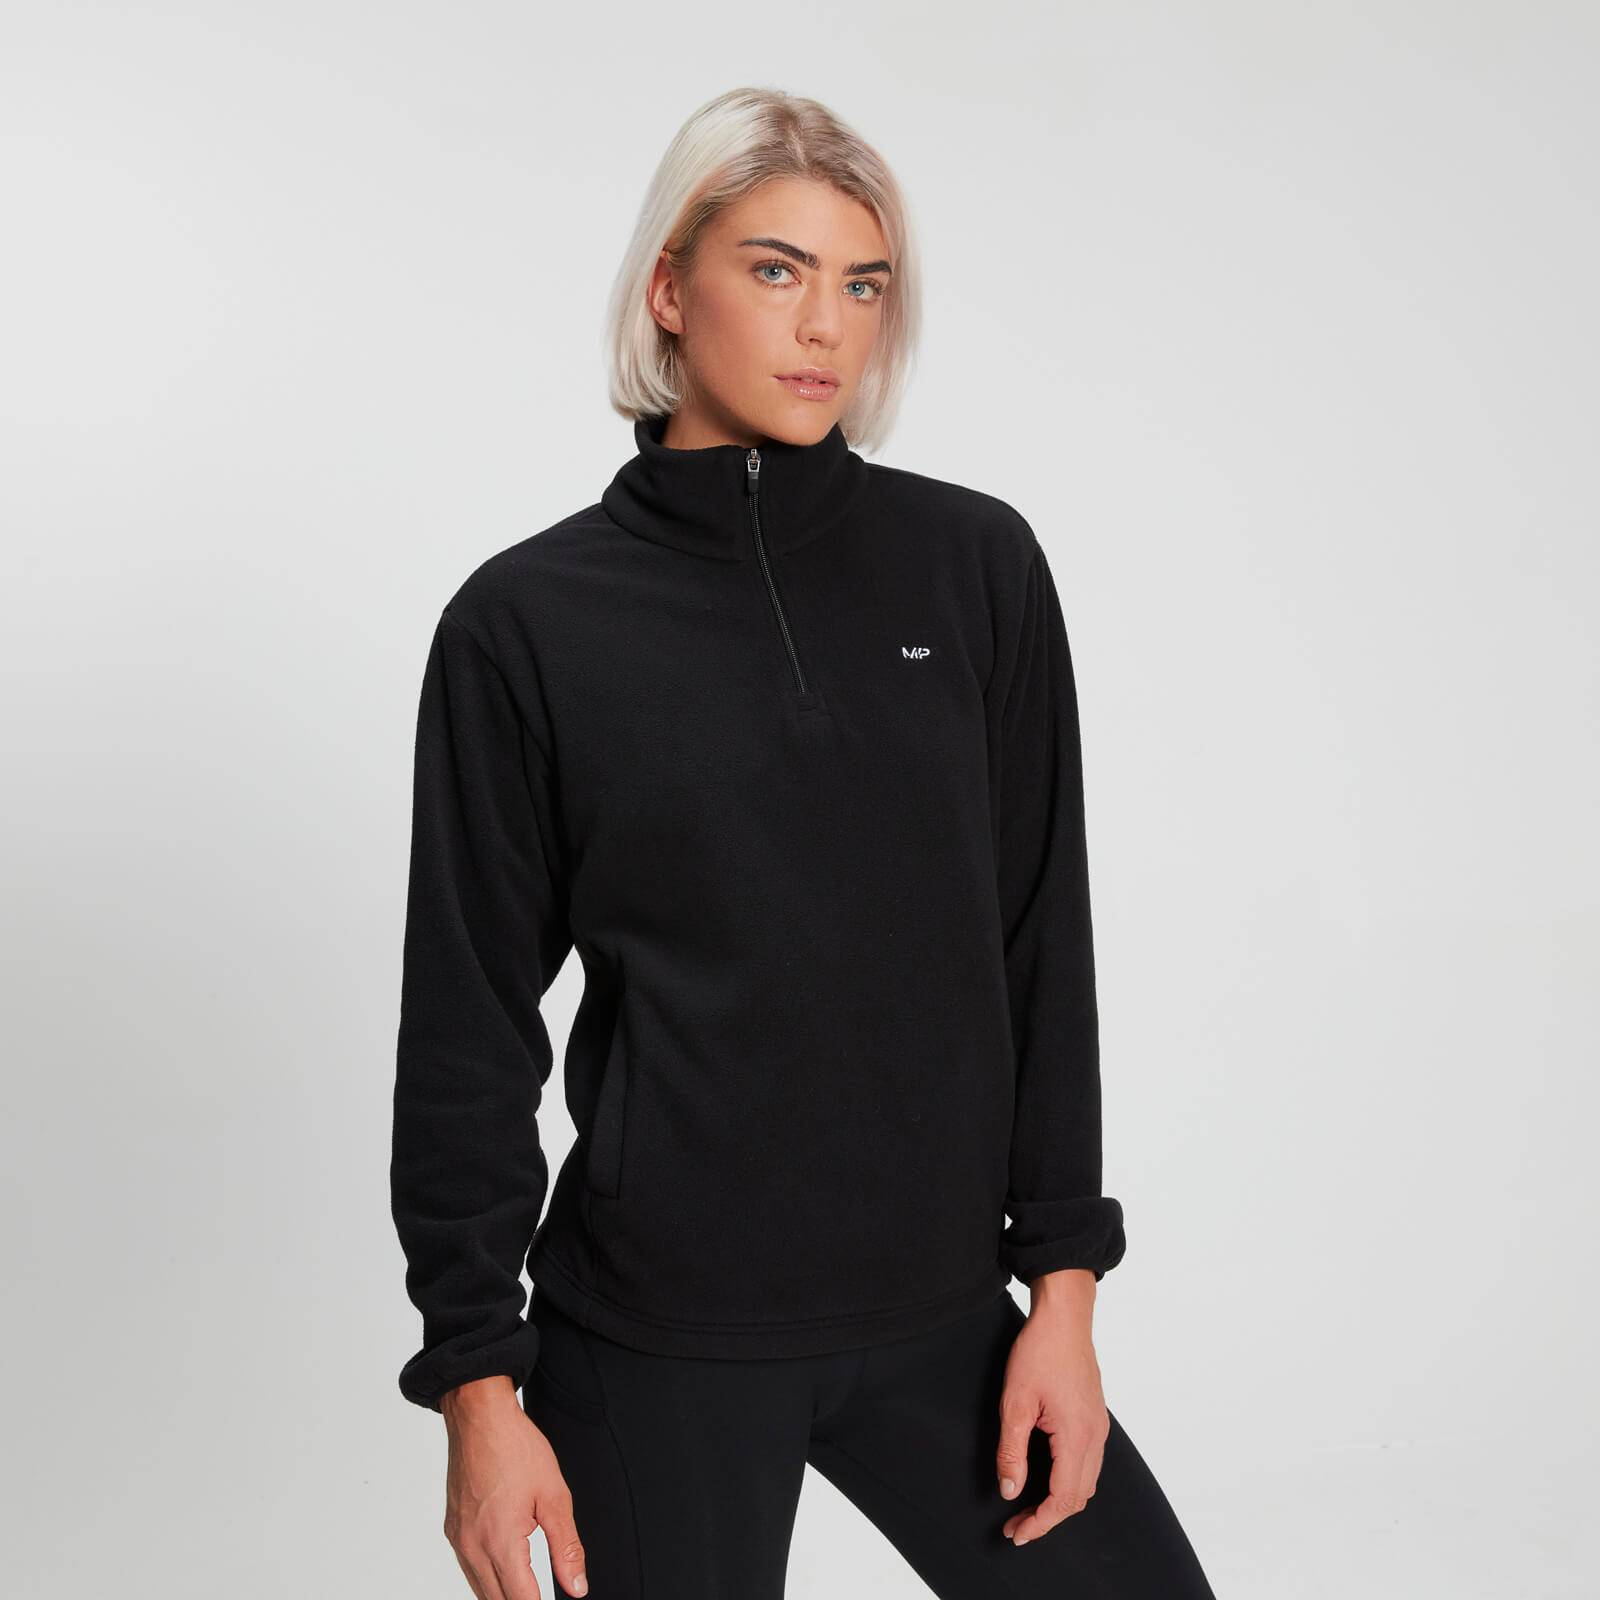 Mp Felpa  Essentials da donna - Nero - XS